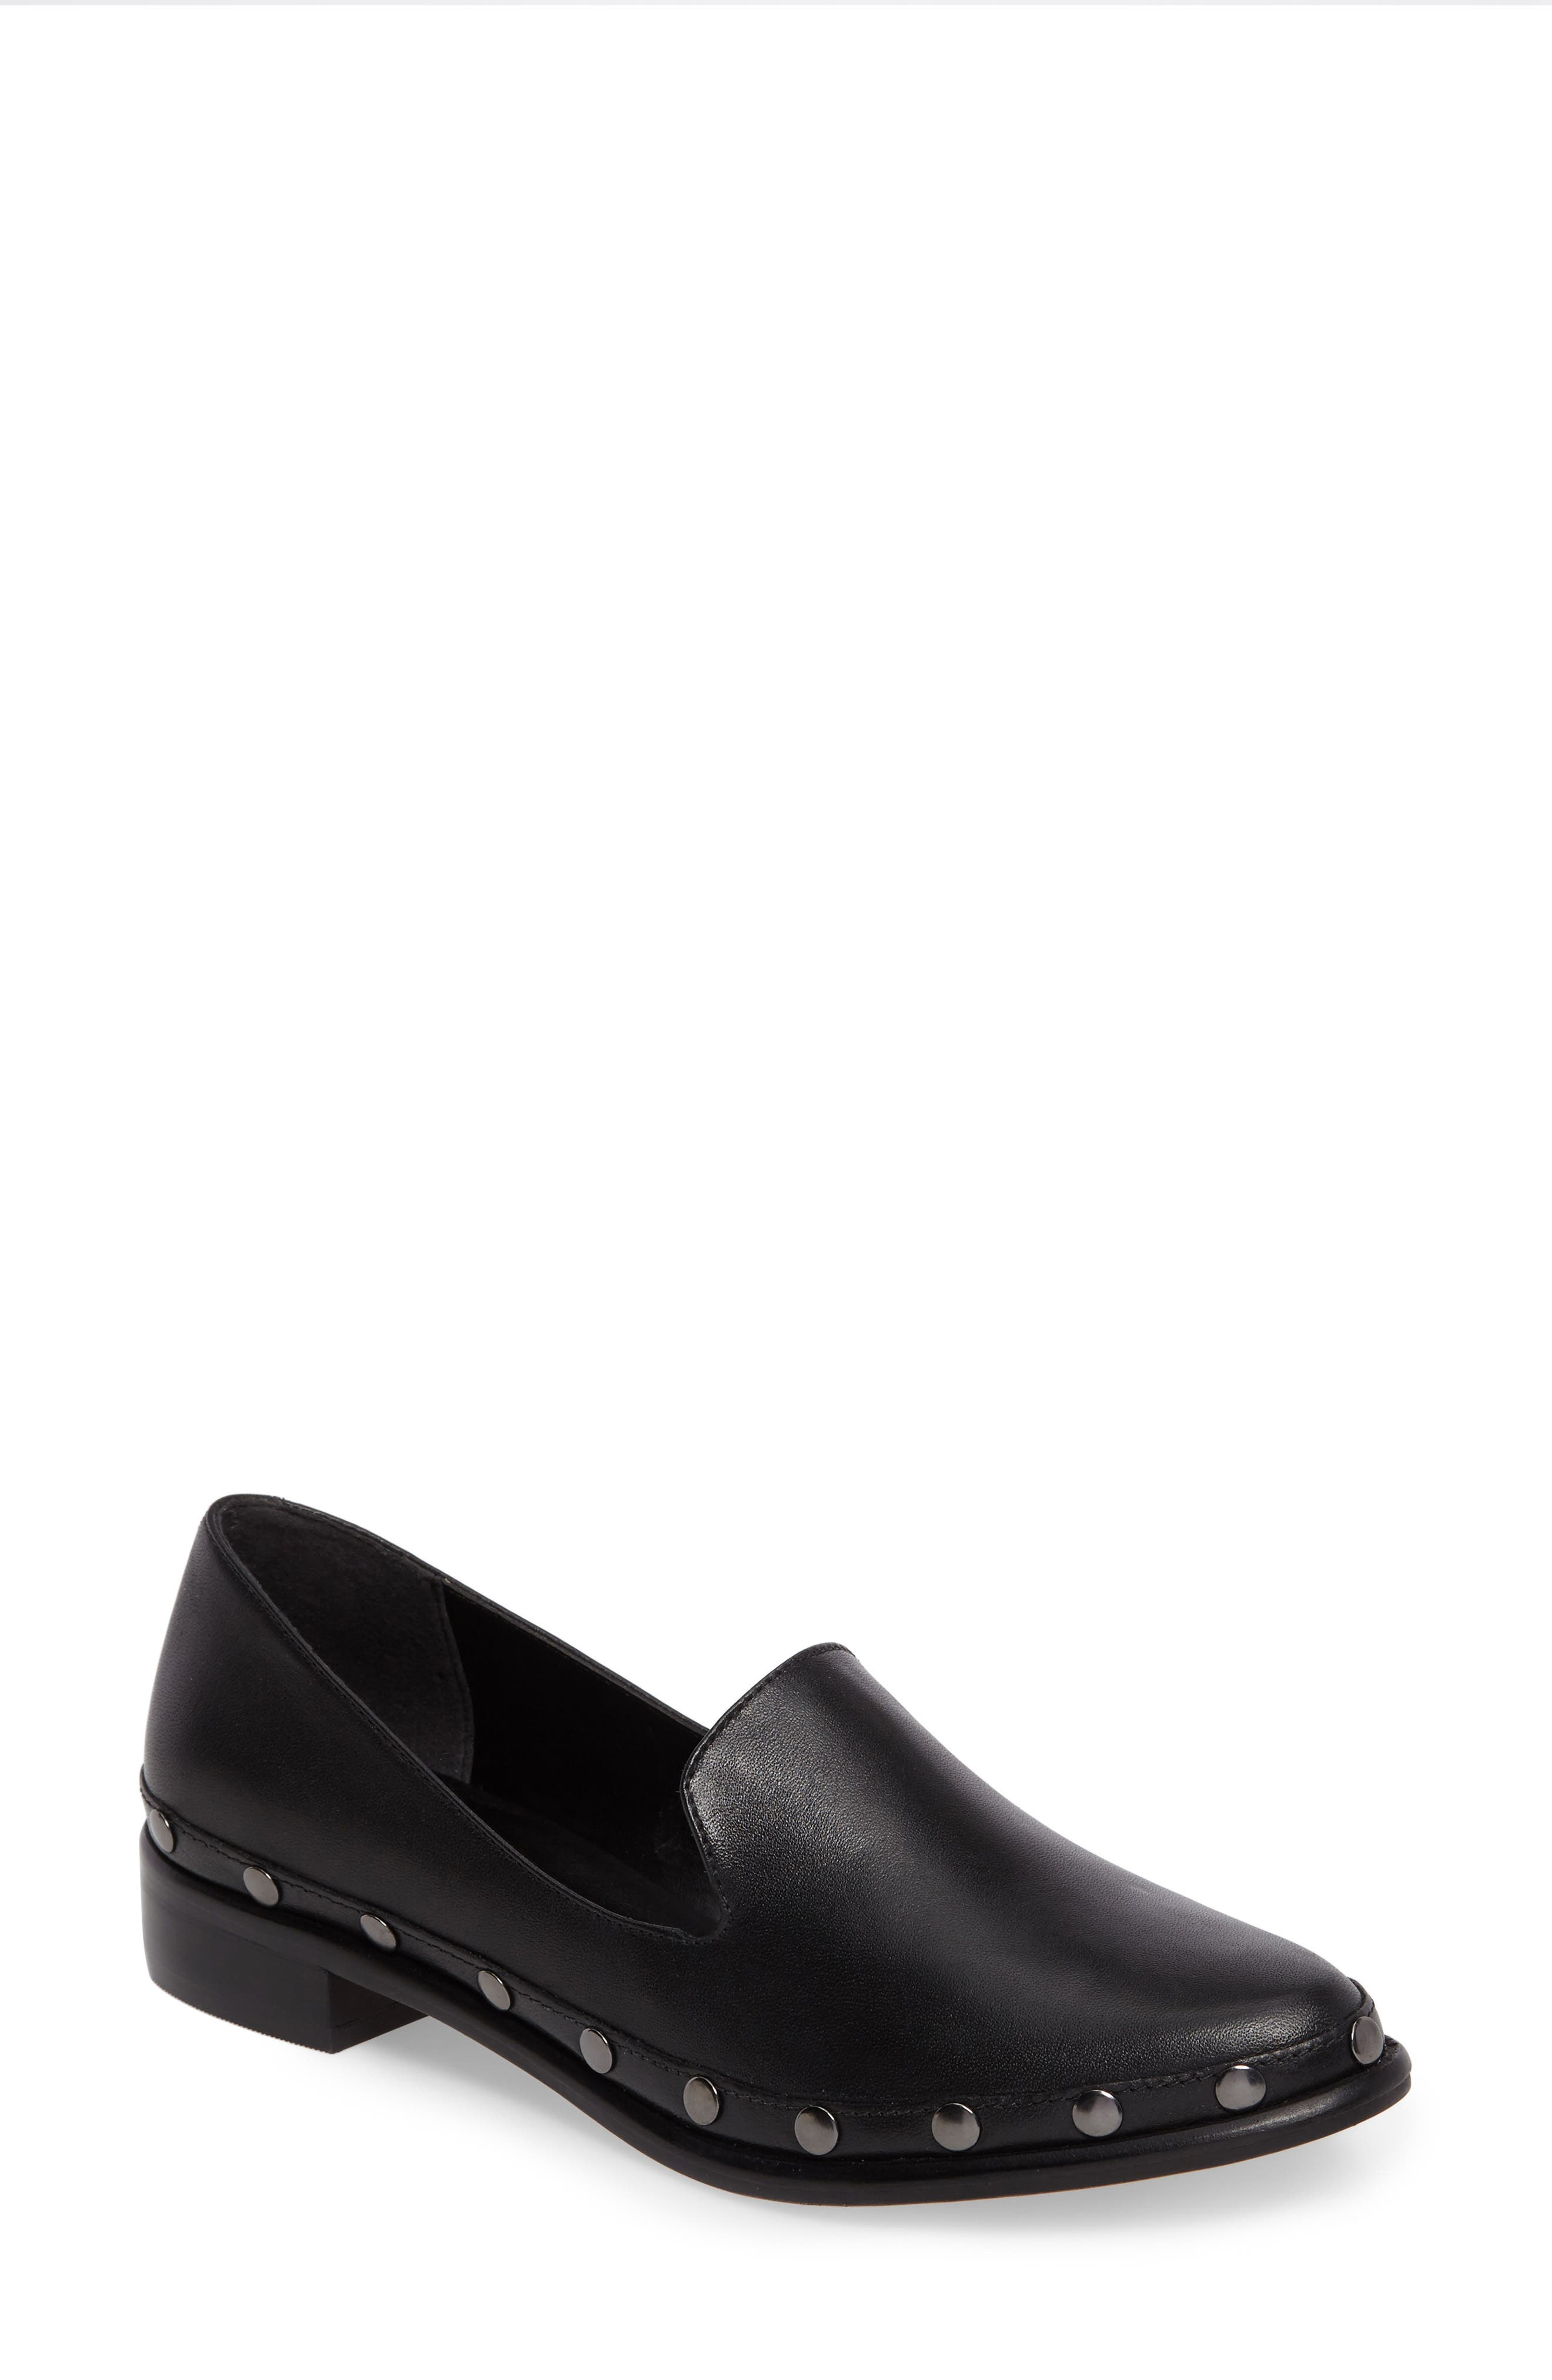 M4D3 Oceania Loafer,                             Main thumbnail 1, color,